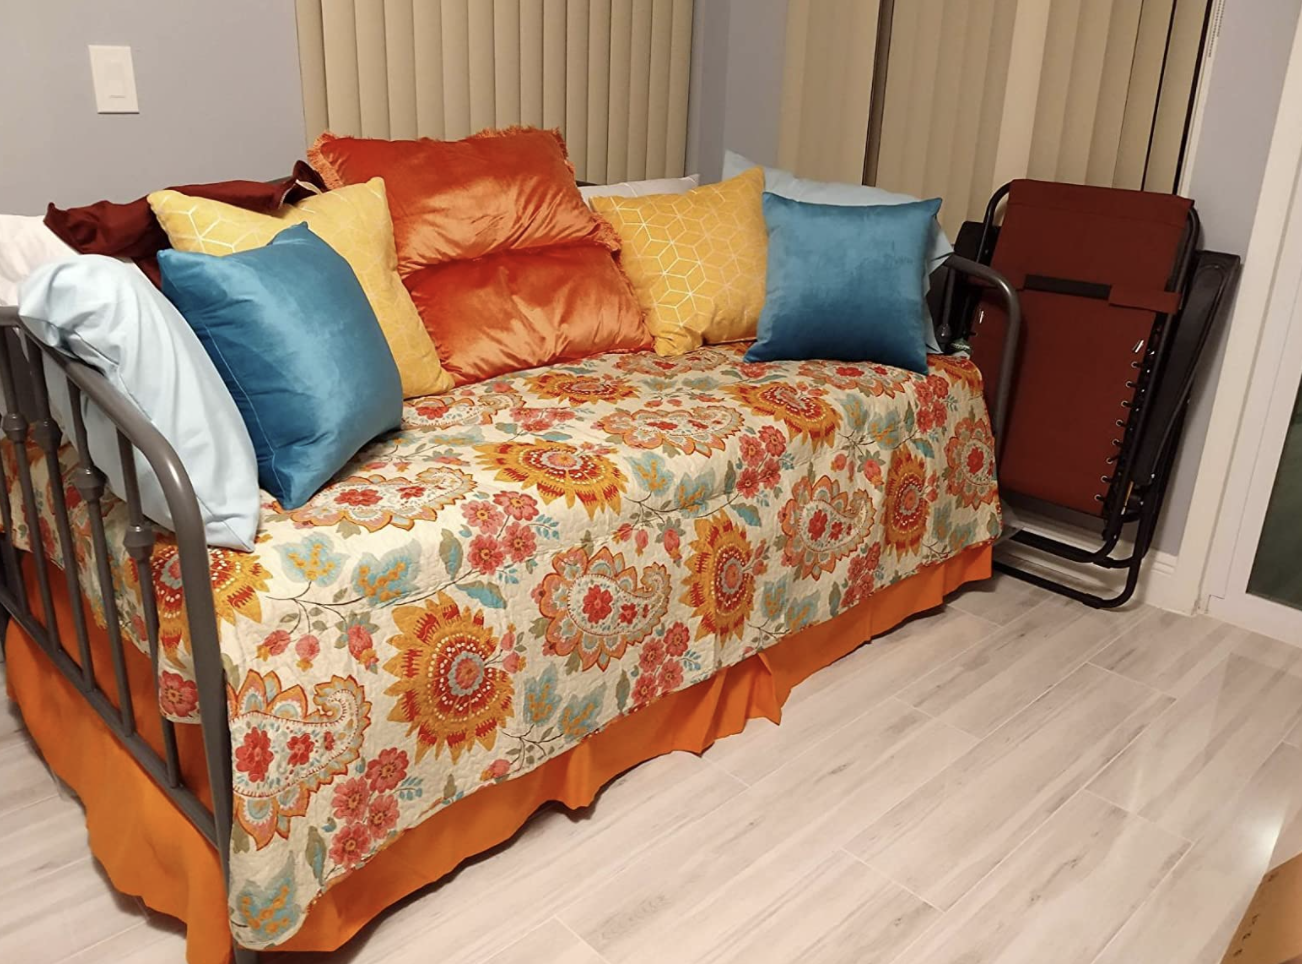 A reviewer's daybed with an orange bed skirt